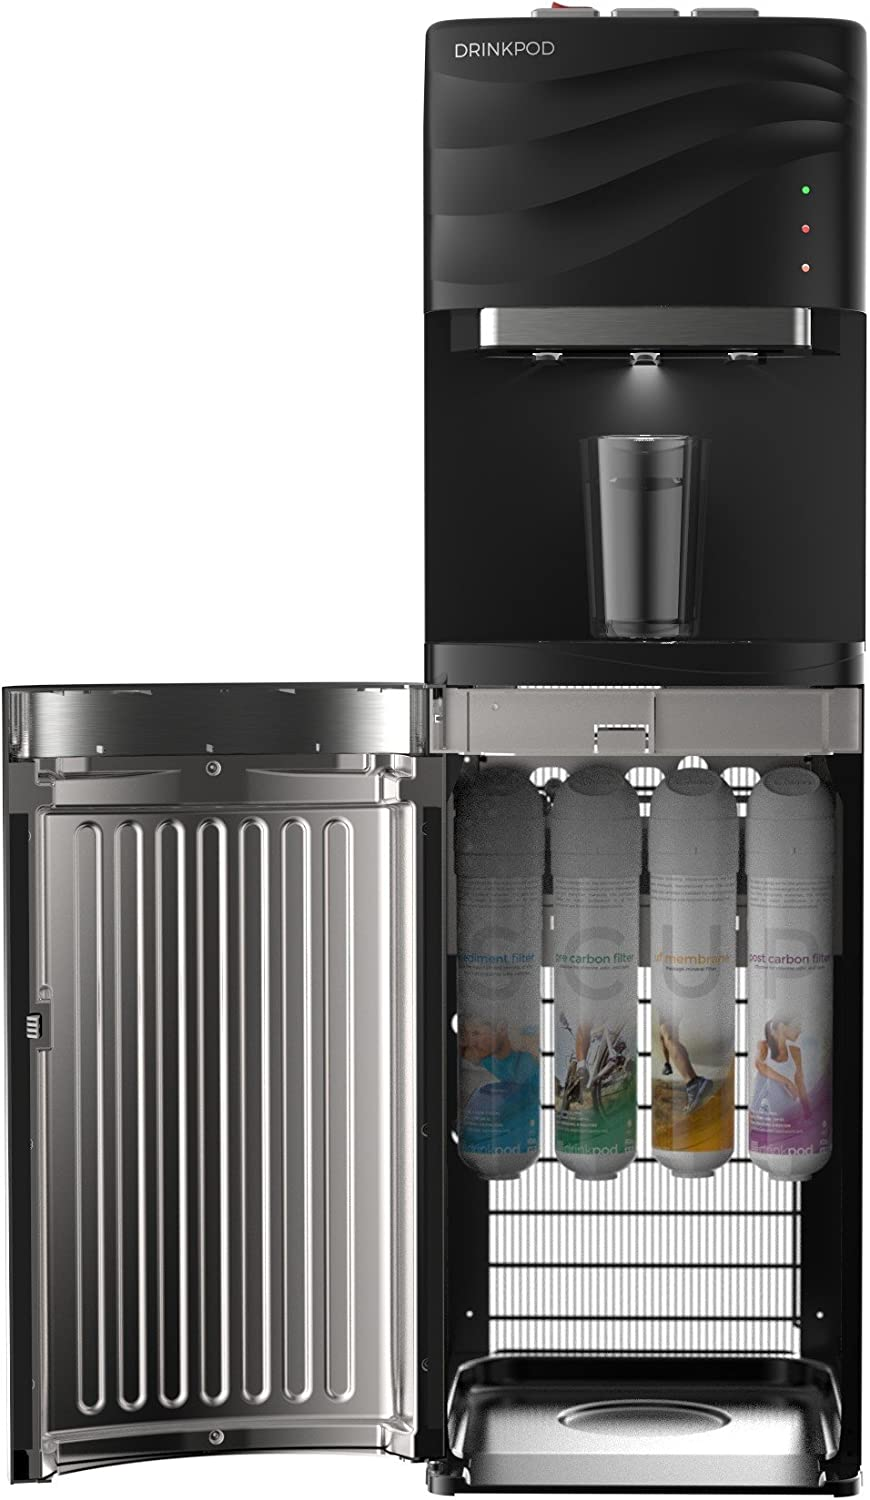 Drinkpod Bottleless Water Cooler Dispenser - With 4-stage of filters